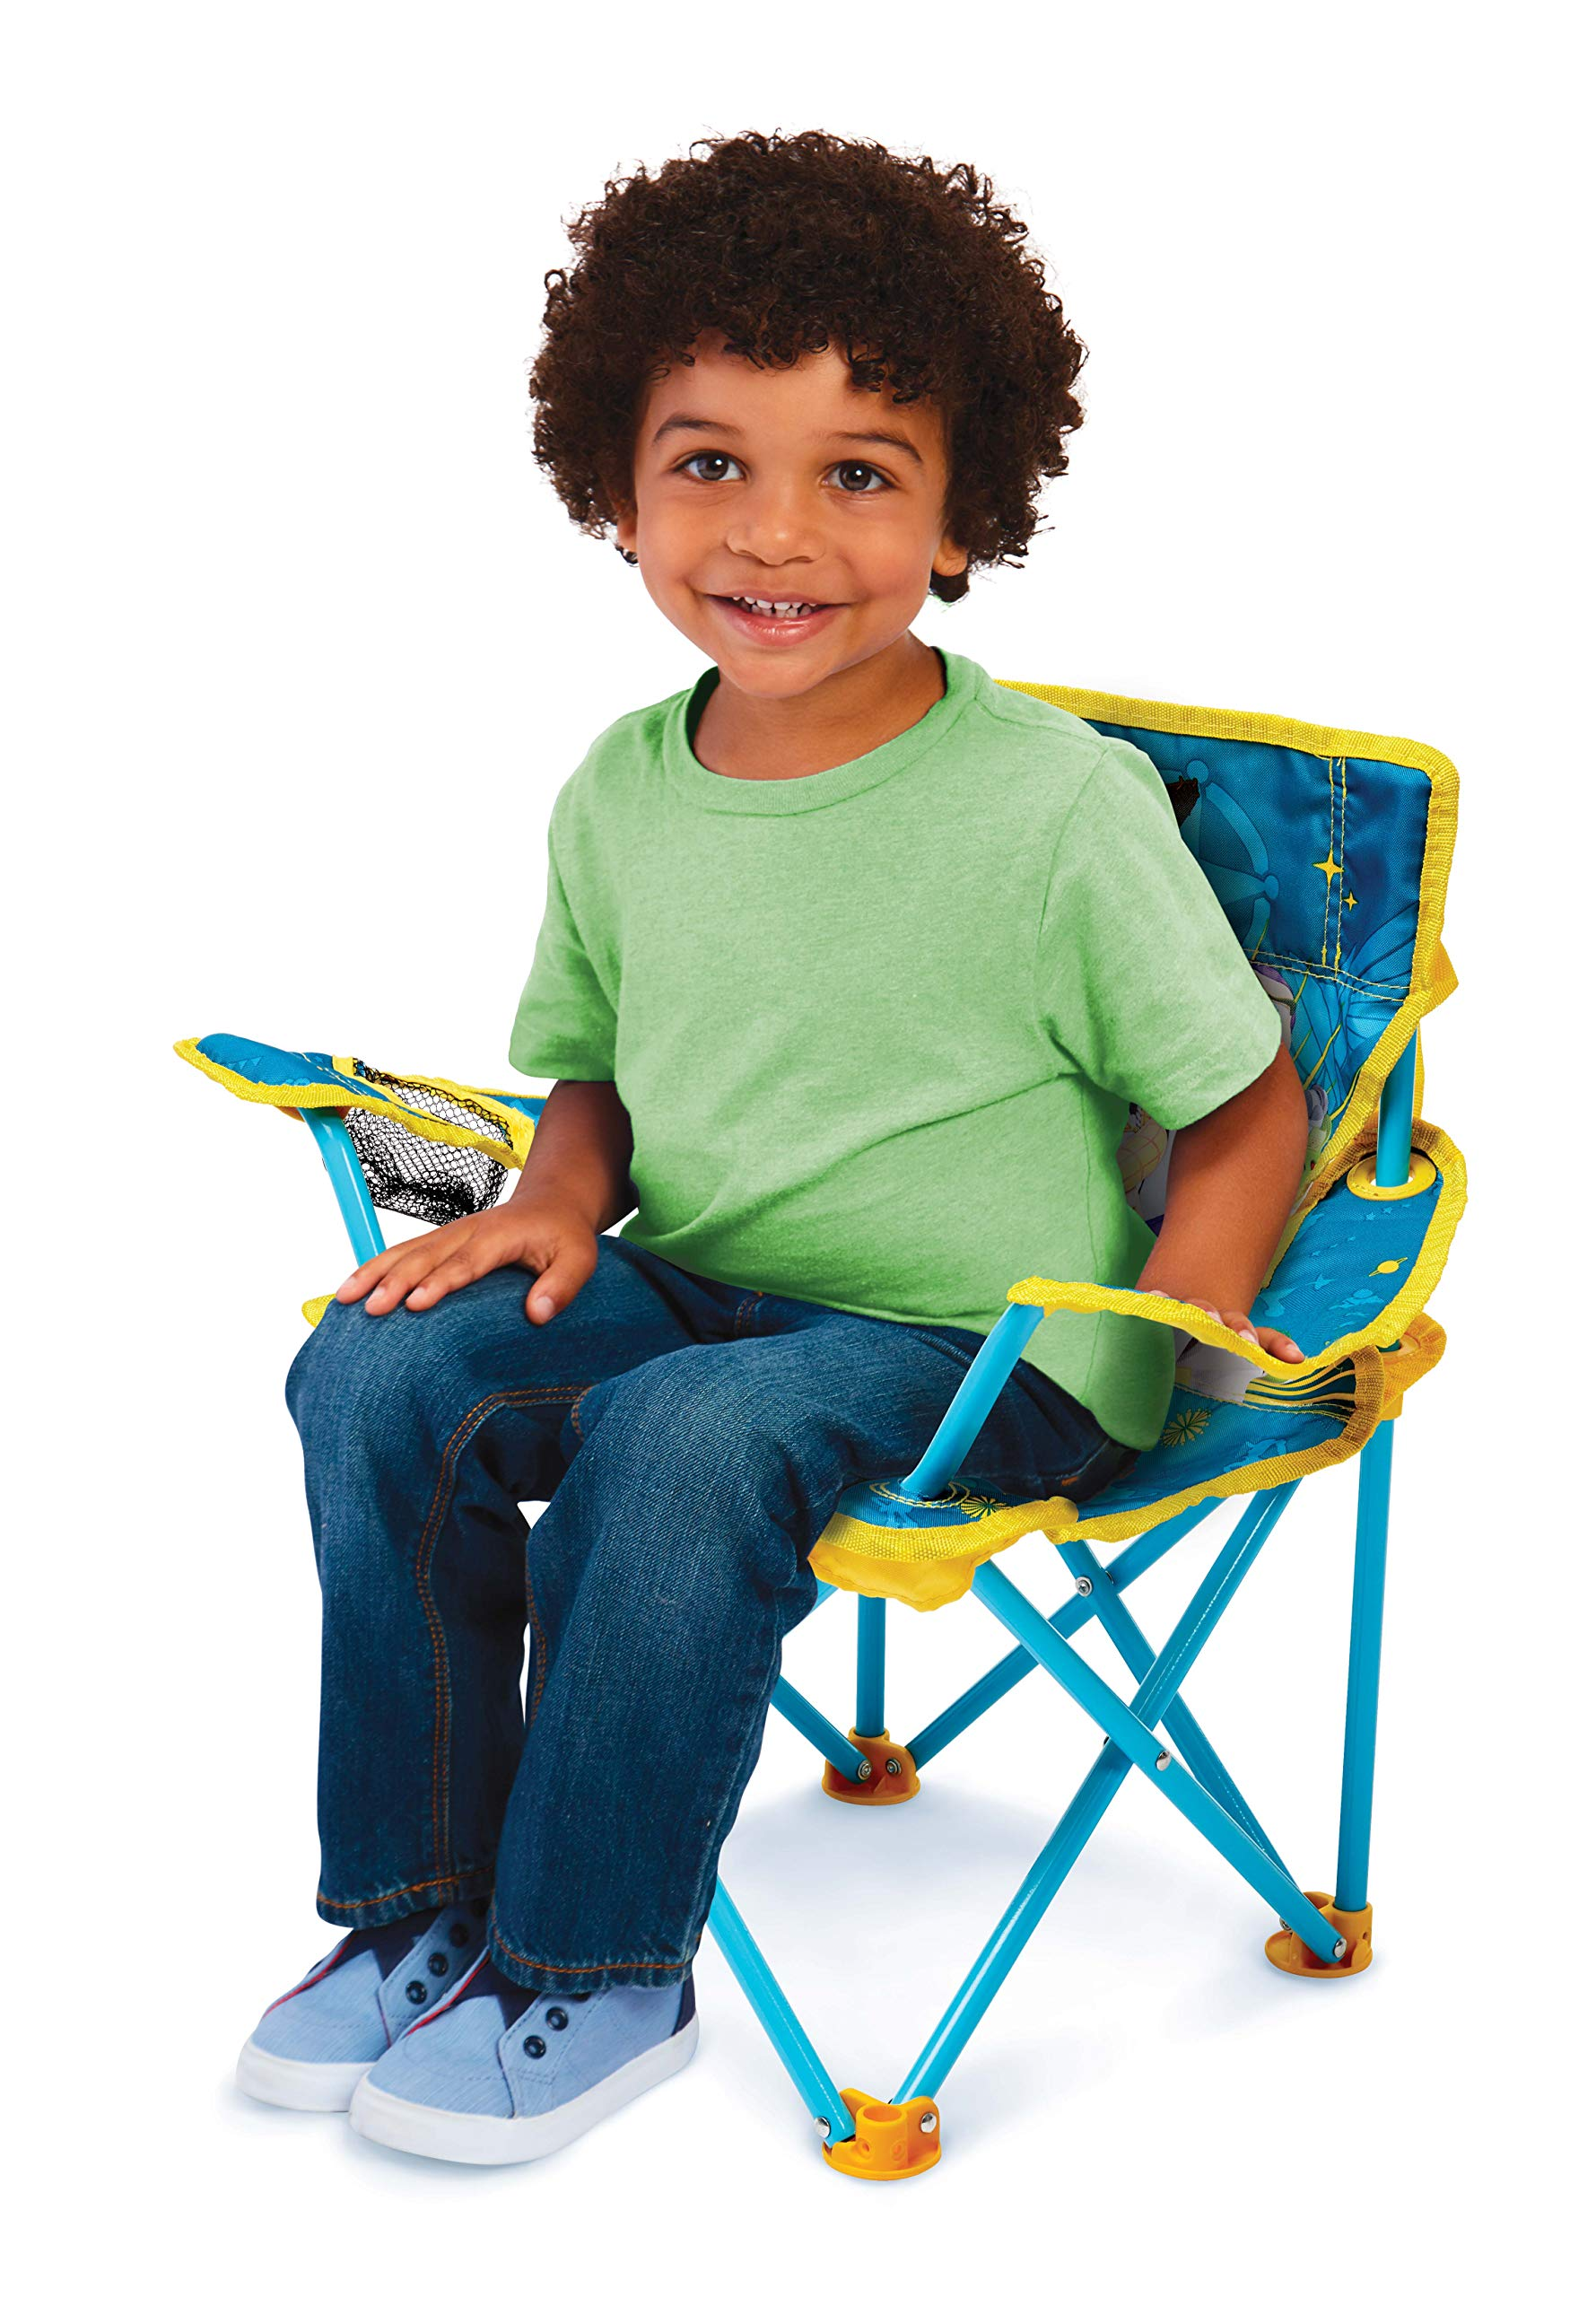 Jakks Pacific Toy Story 4 Camp Chair for Kids, Portable Camping Fold N Go Chair with Carry Bag by Jakks Pacific (Image #2)